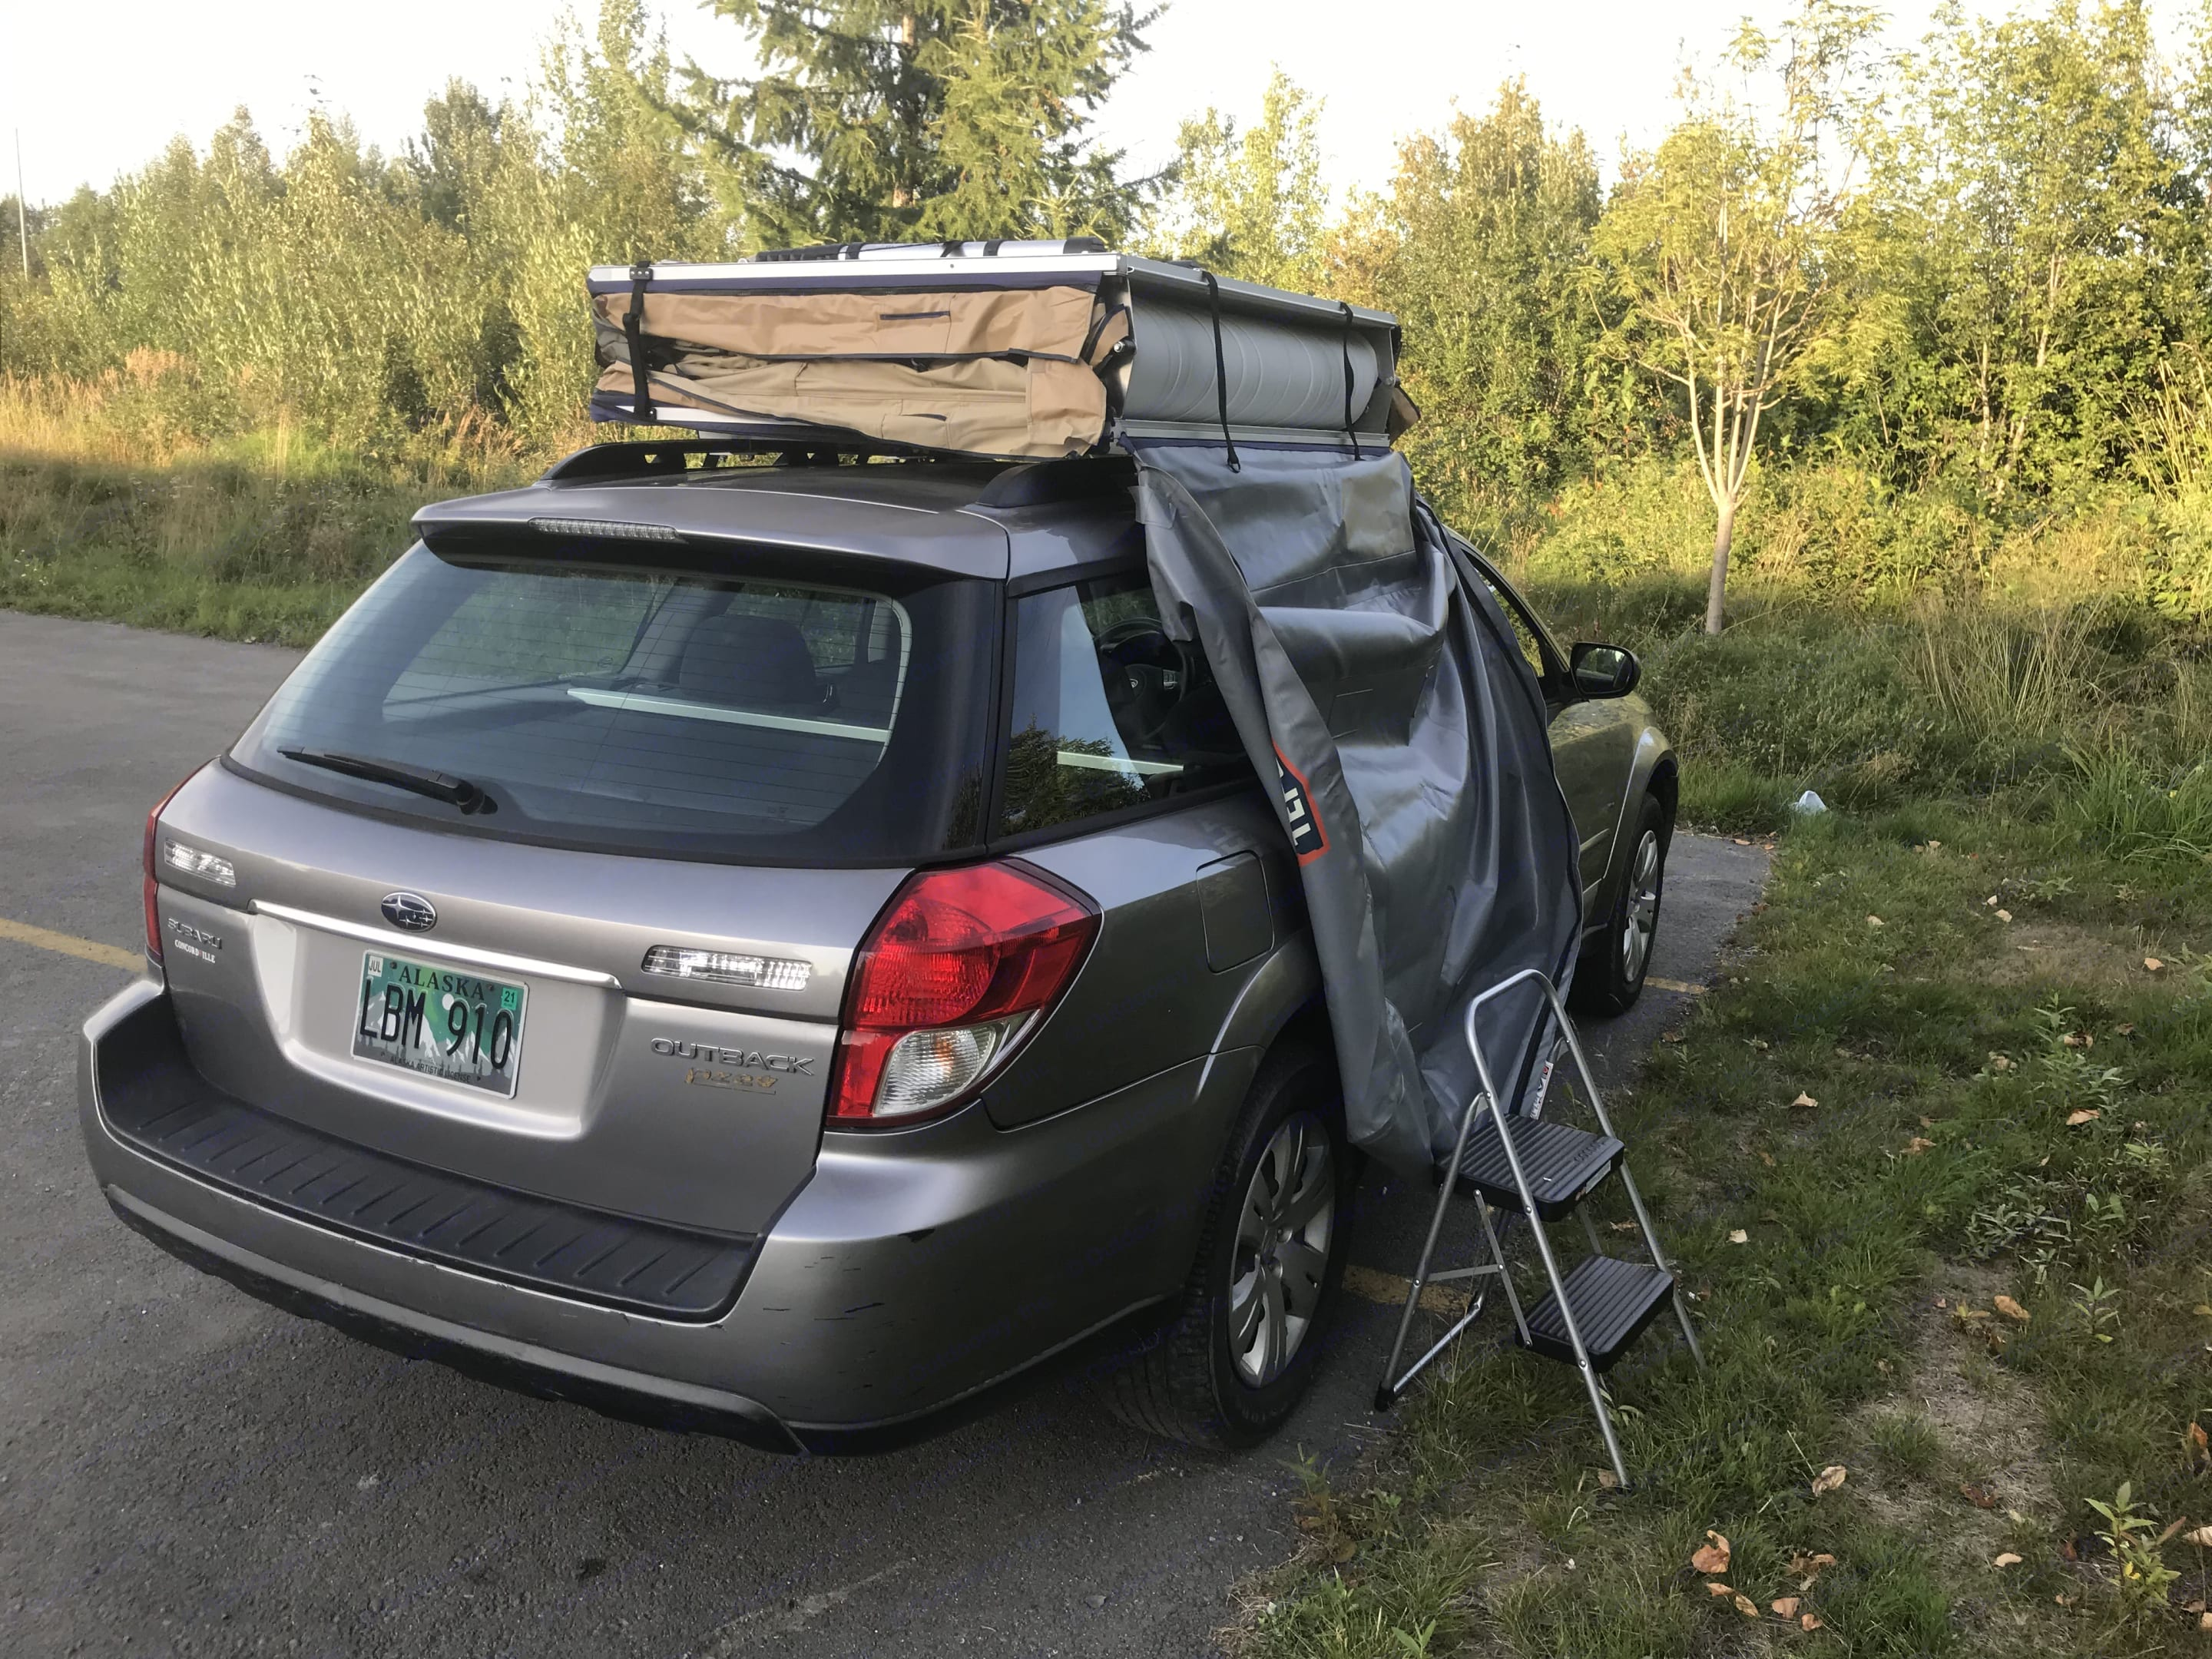 Rooftop tent prior to unfolding. Subaru FORESTER 2009